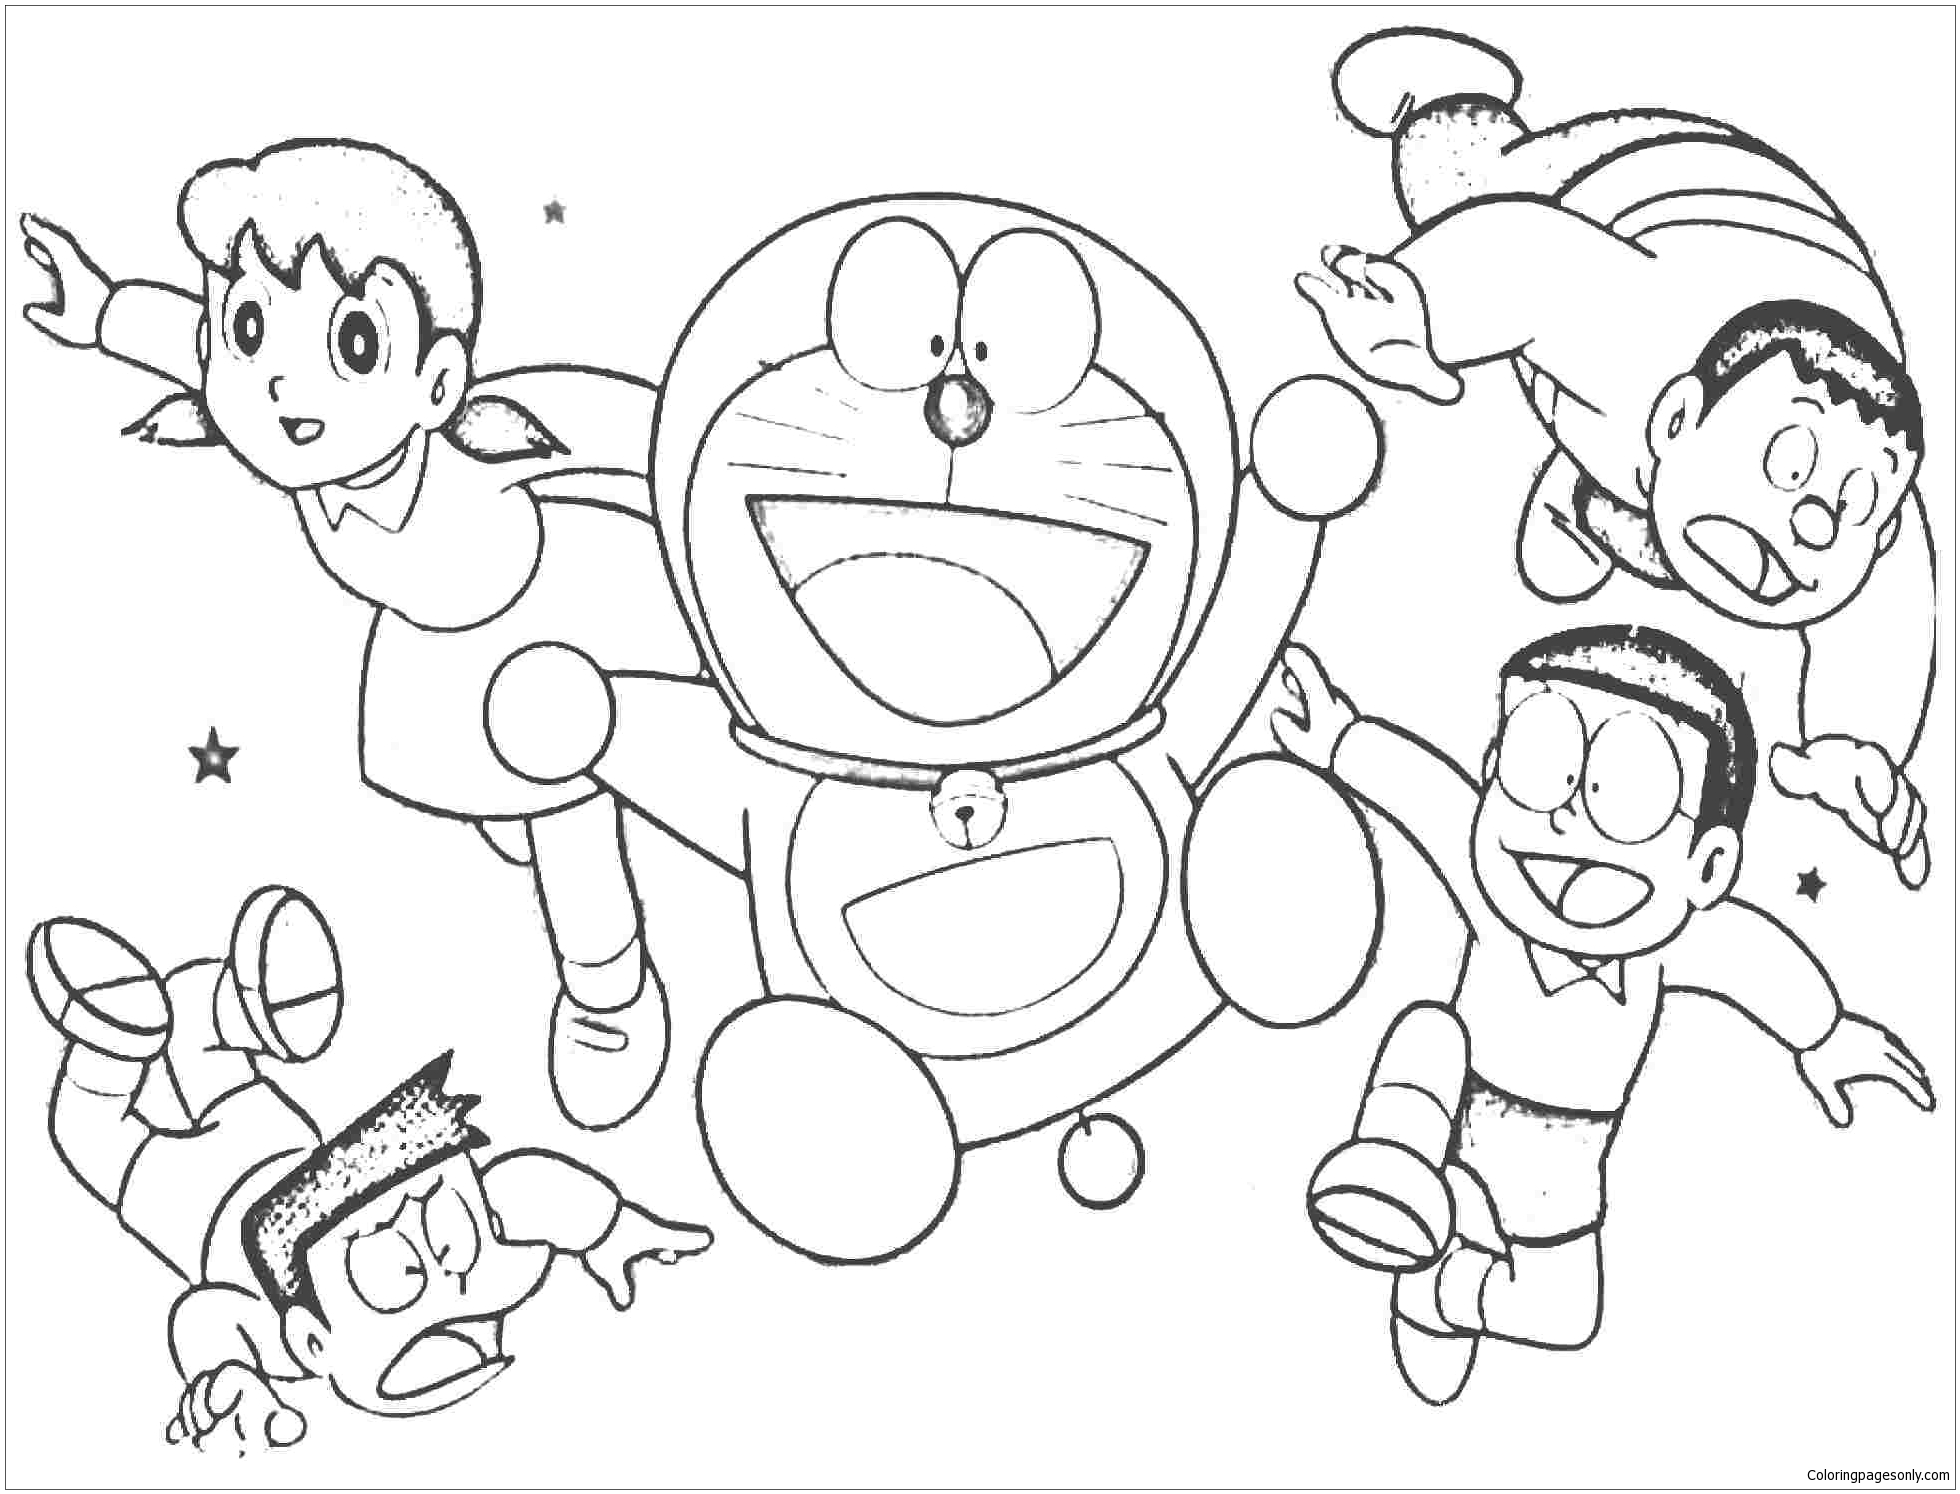 About Cheerful Doraemon With His Friends Coloring Page